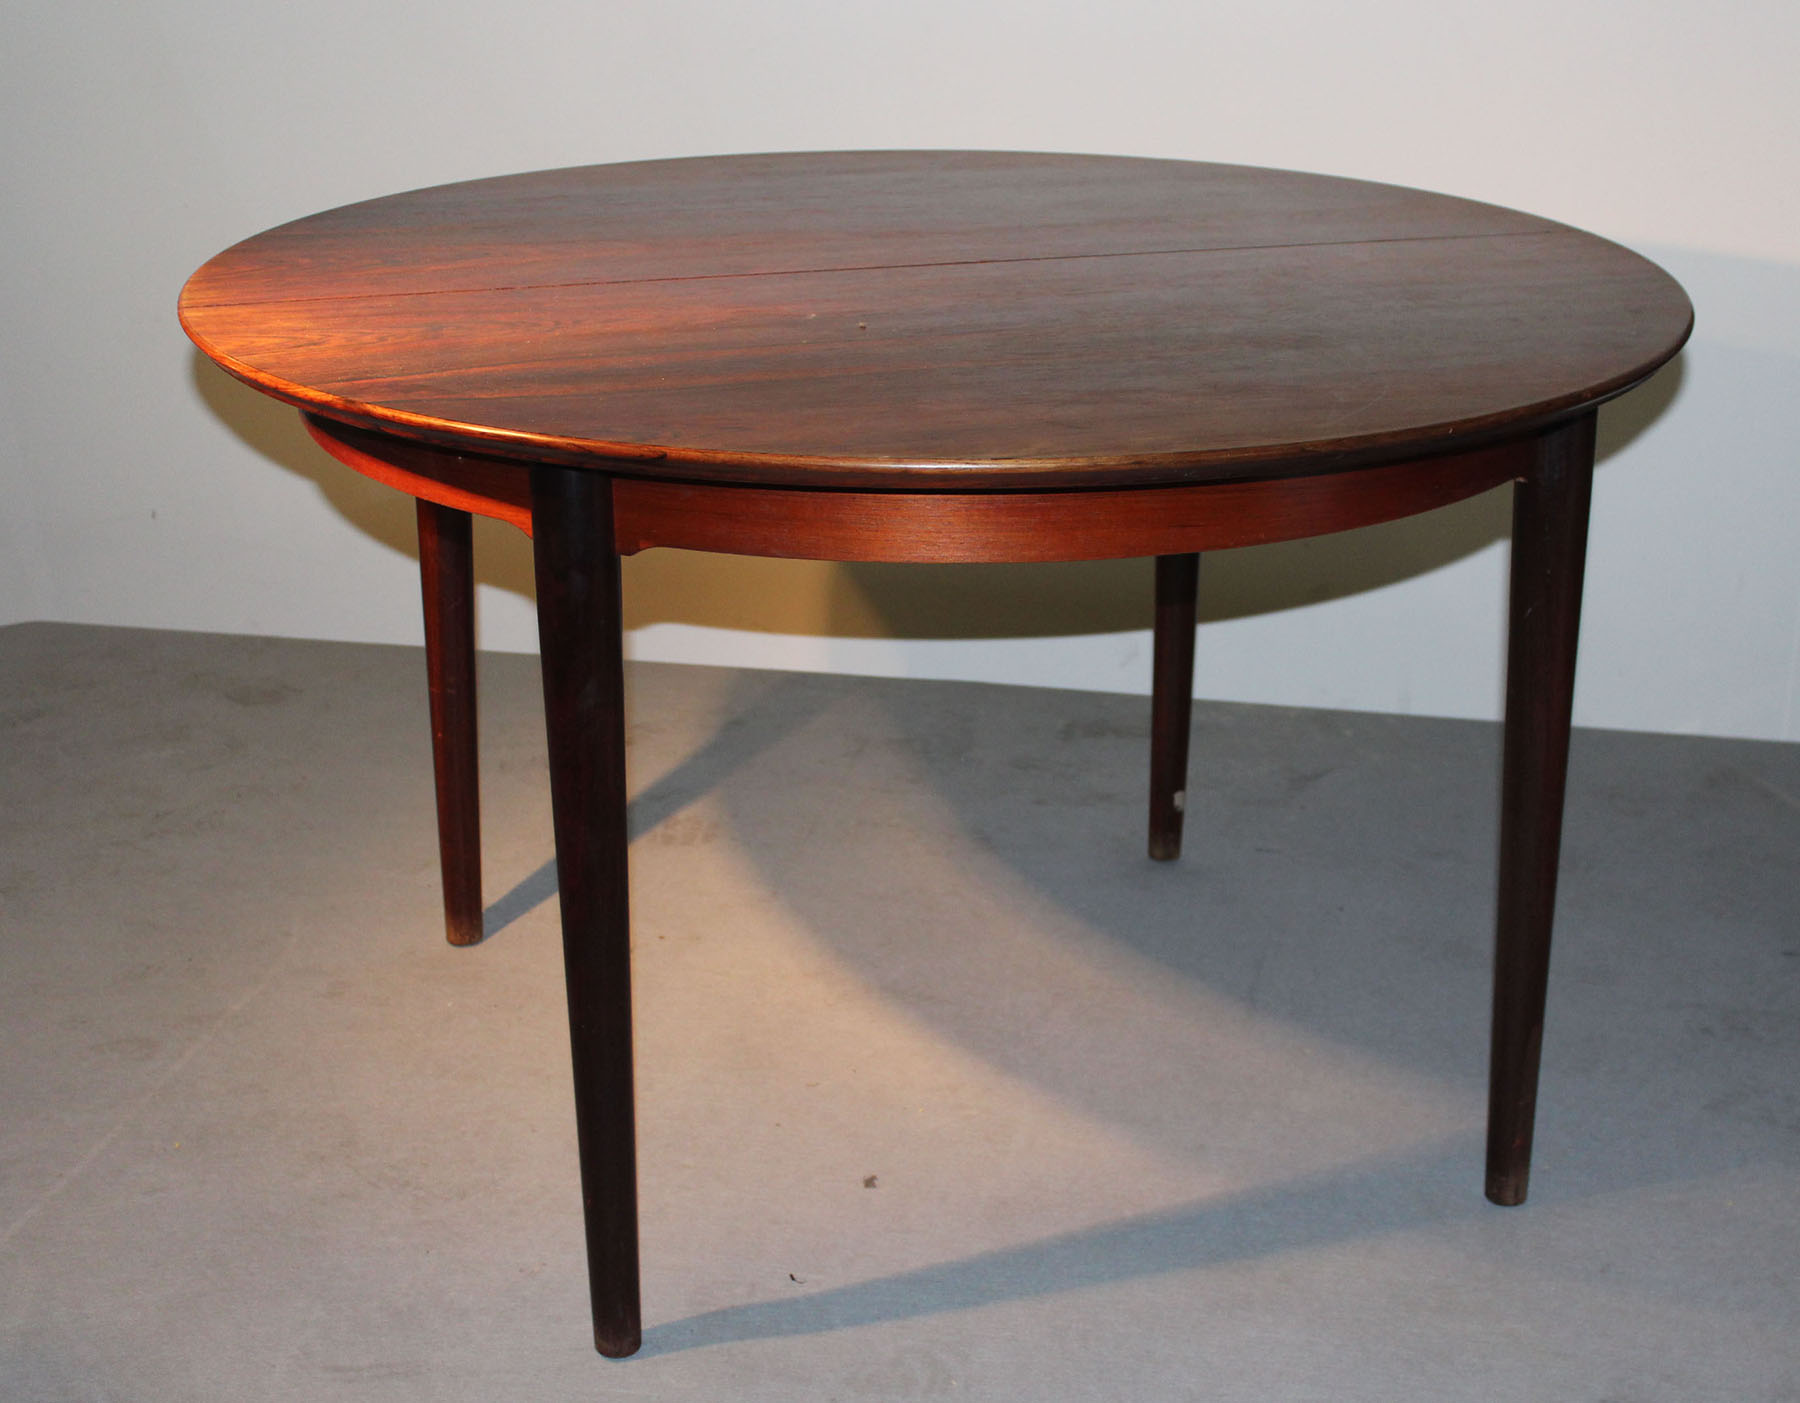 Lot 29 - DANISH DINING TABLE